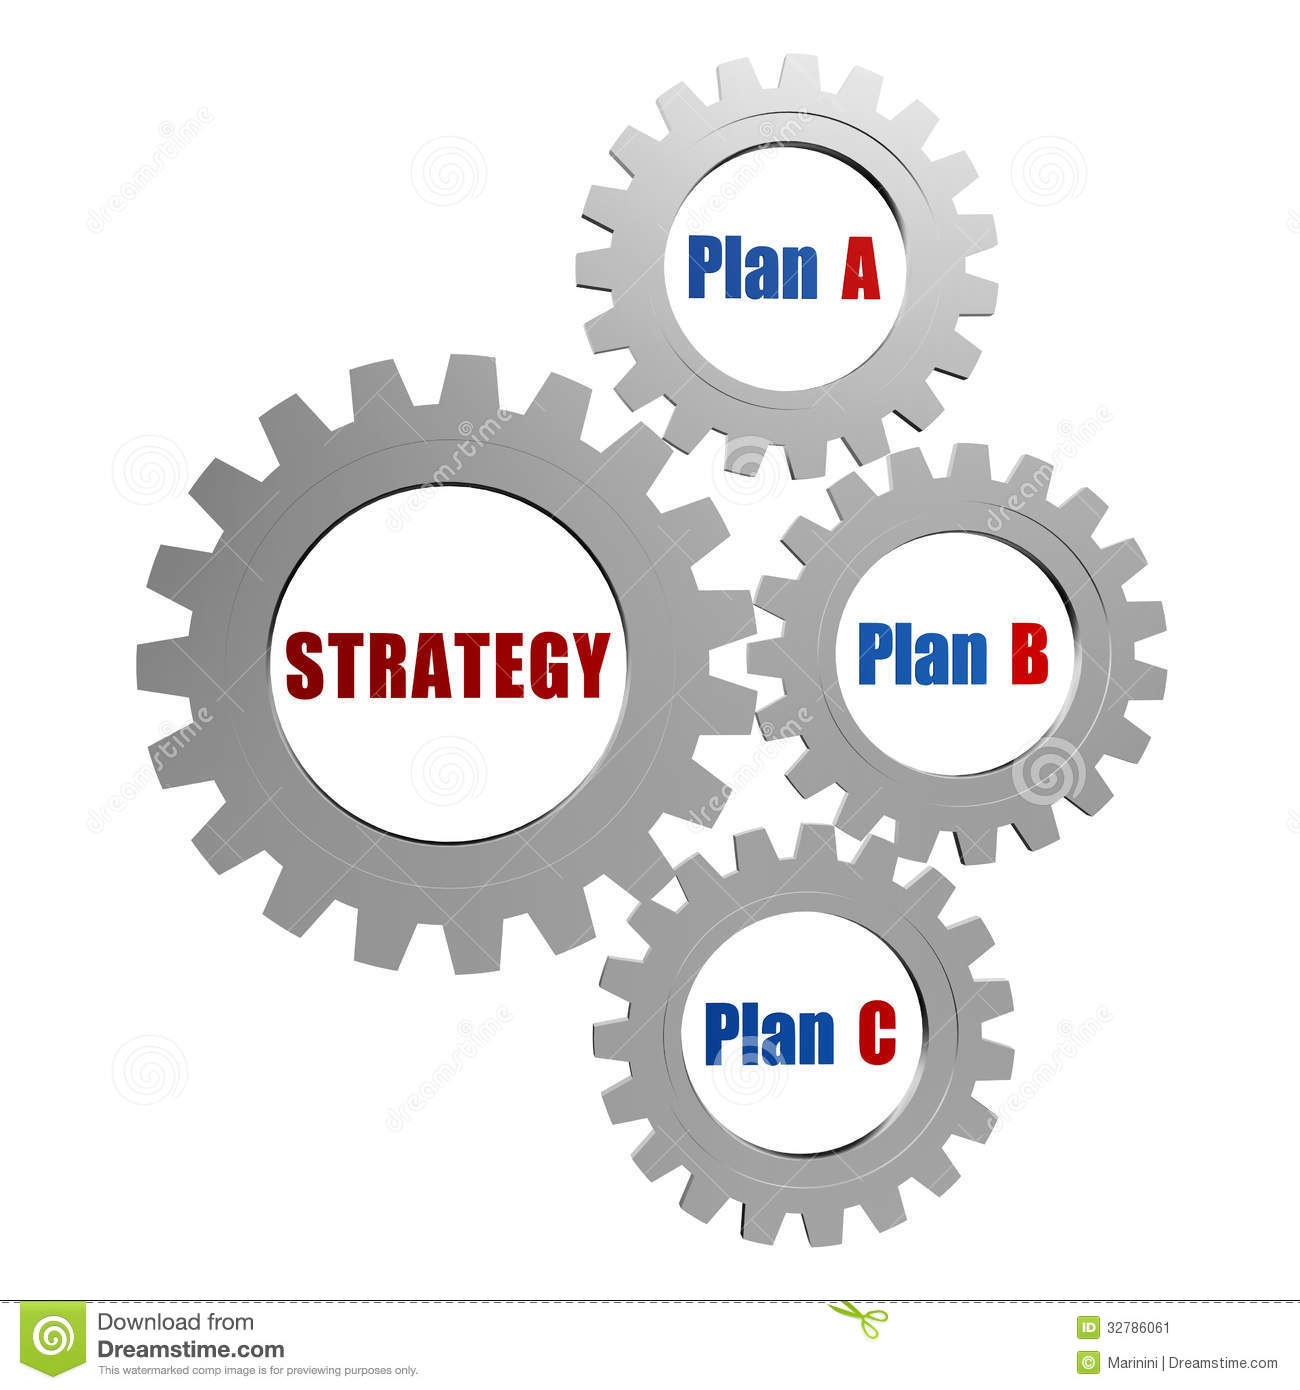 b-plan business plan